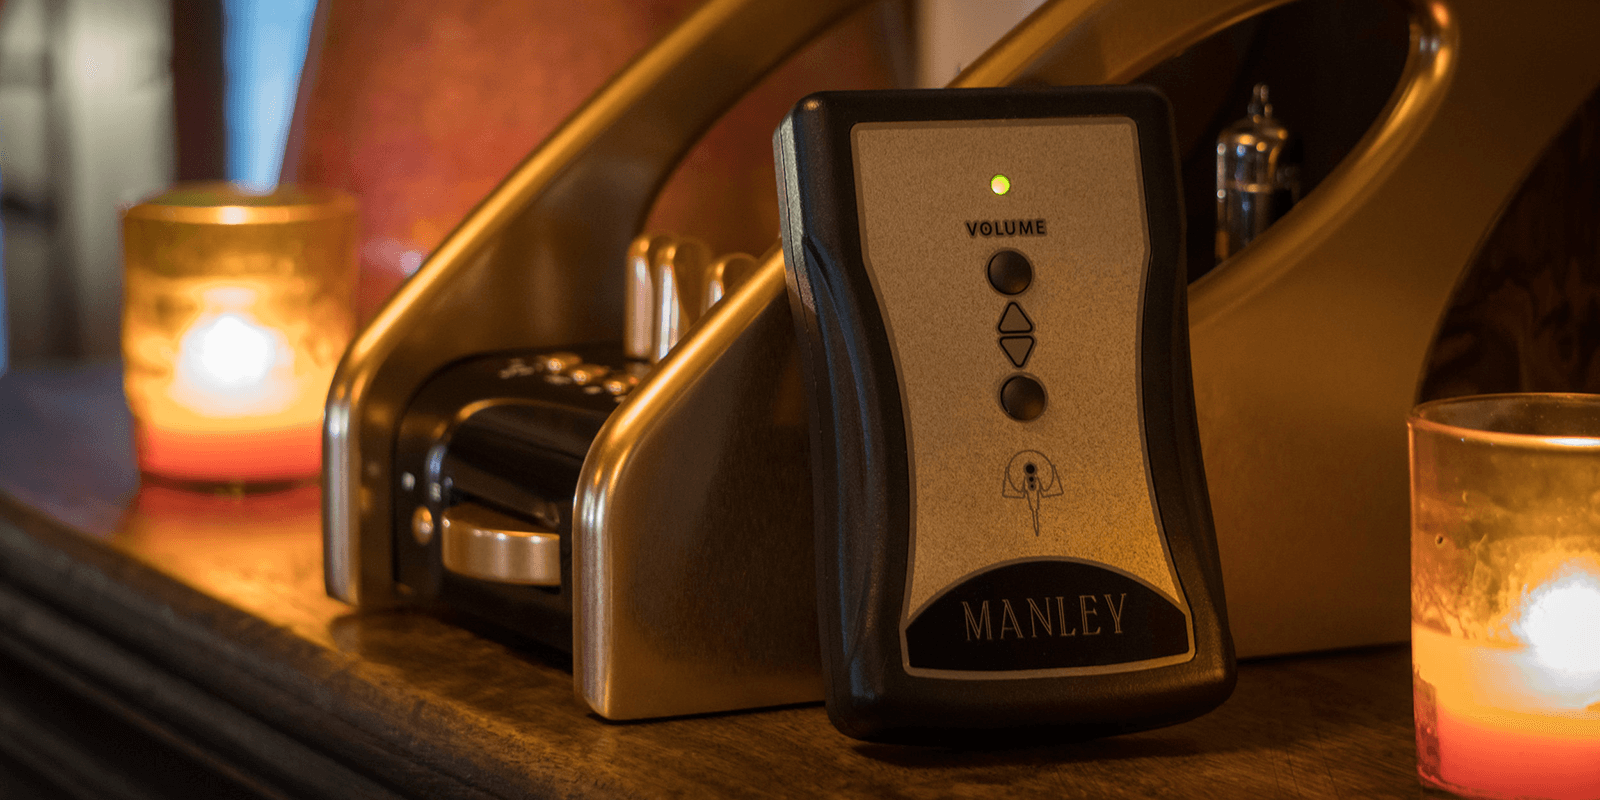 remote control for Manley Absolute amp